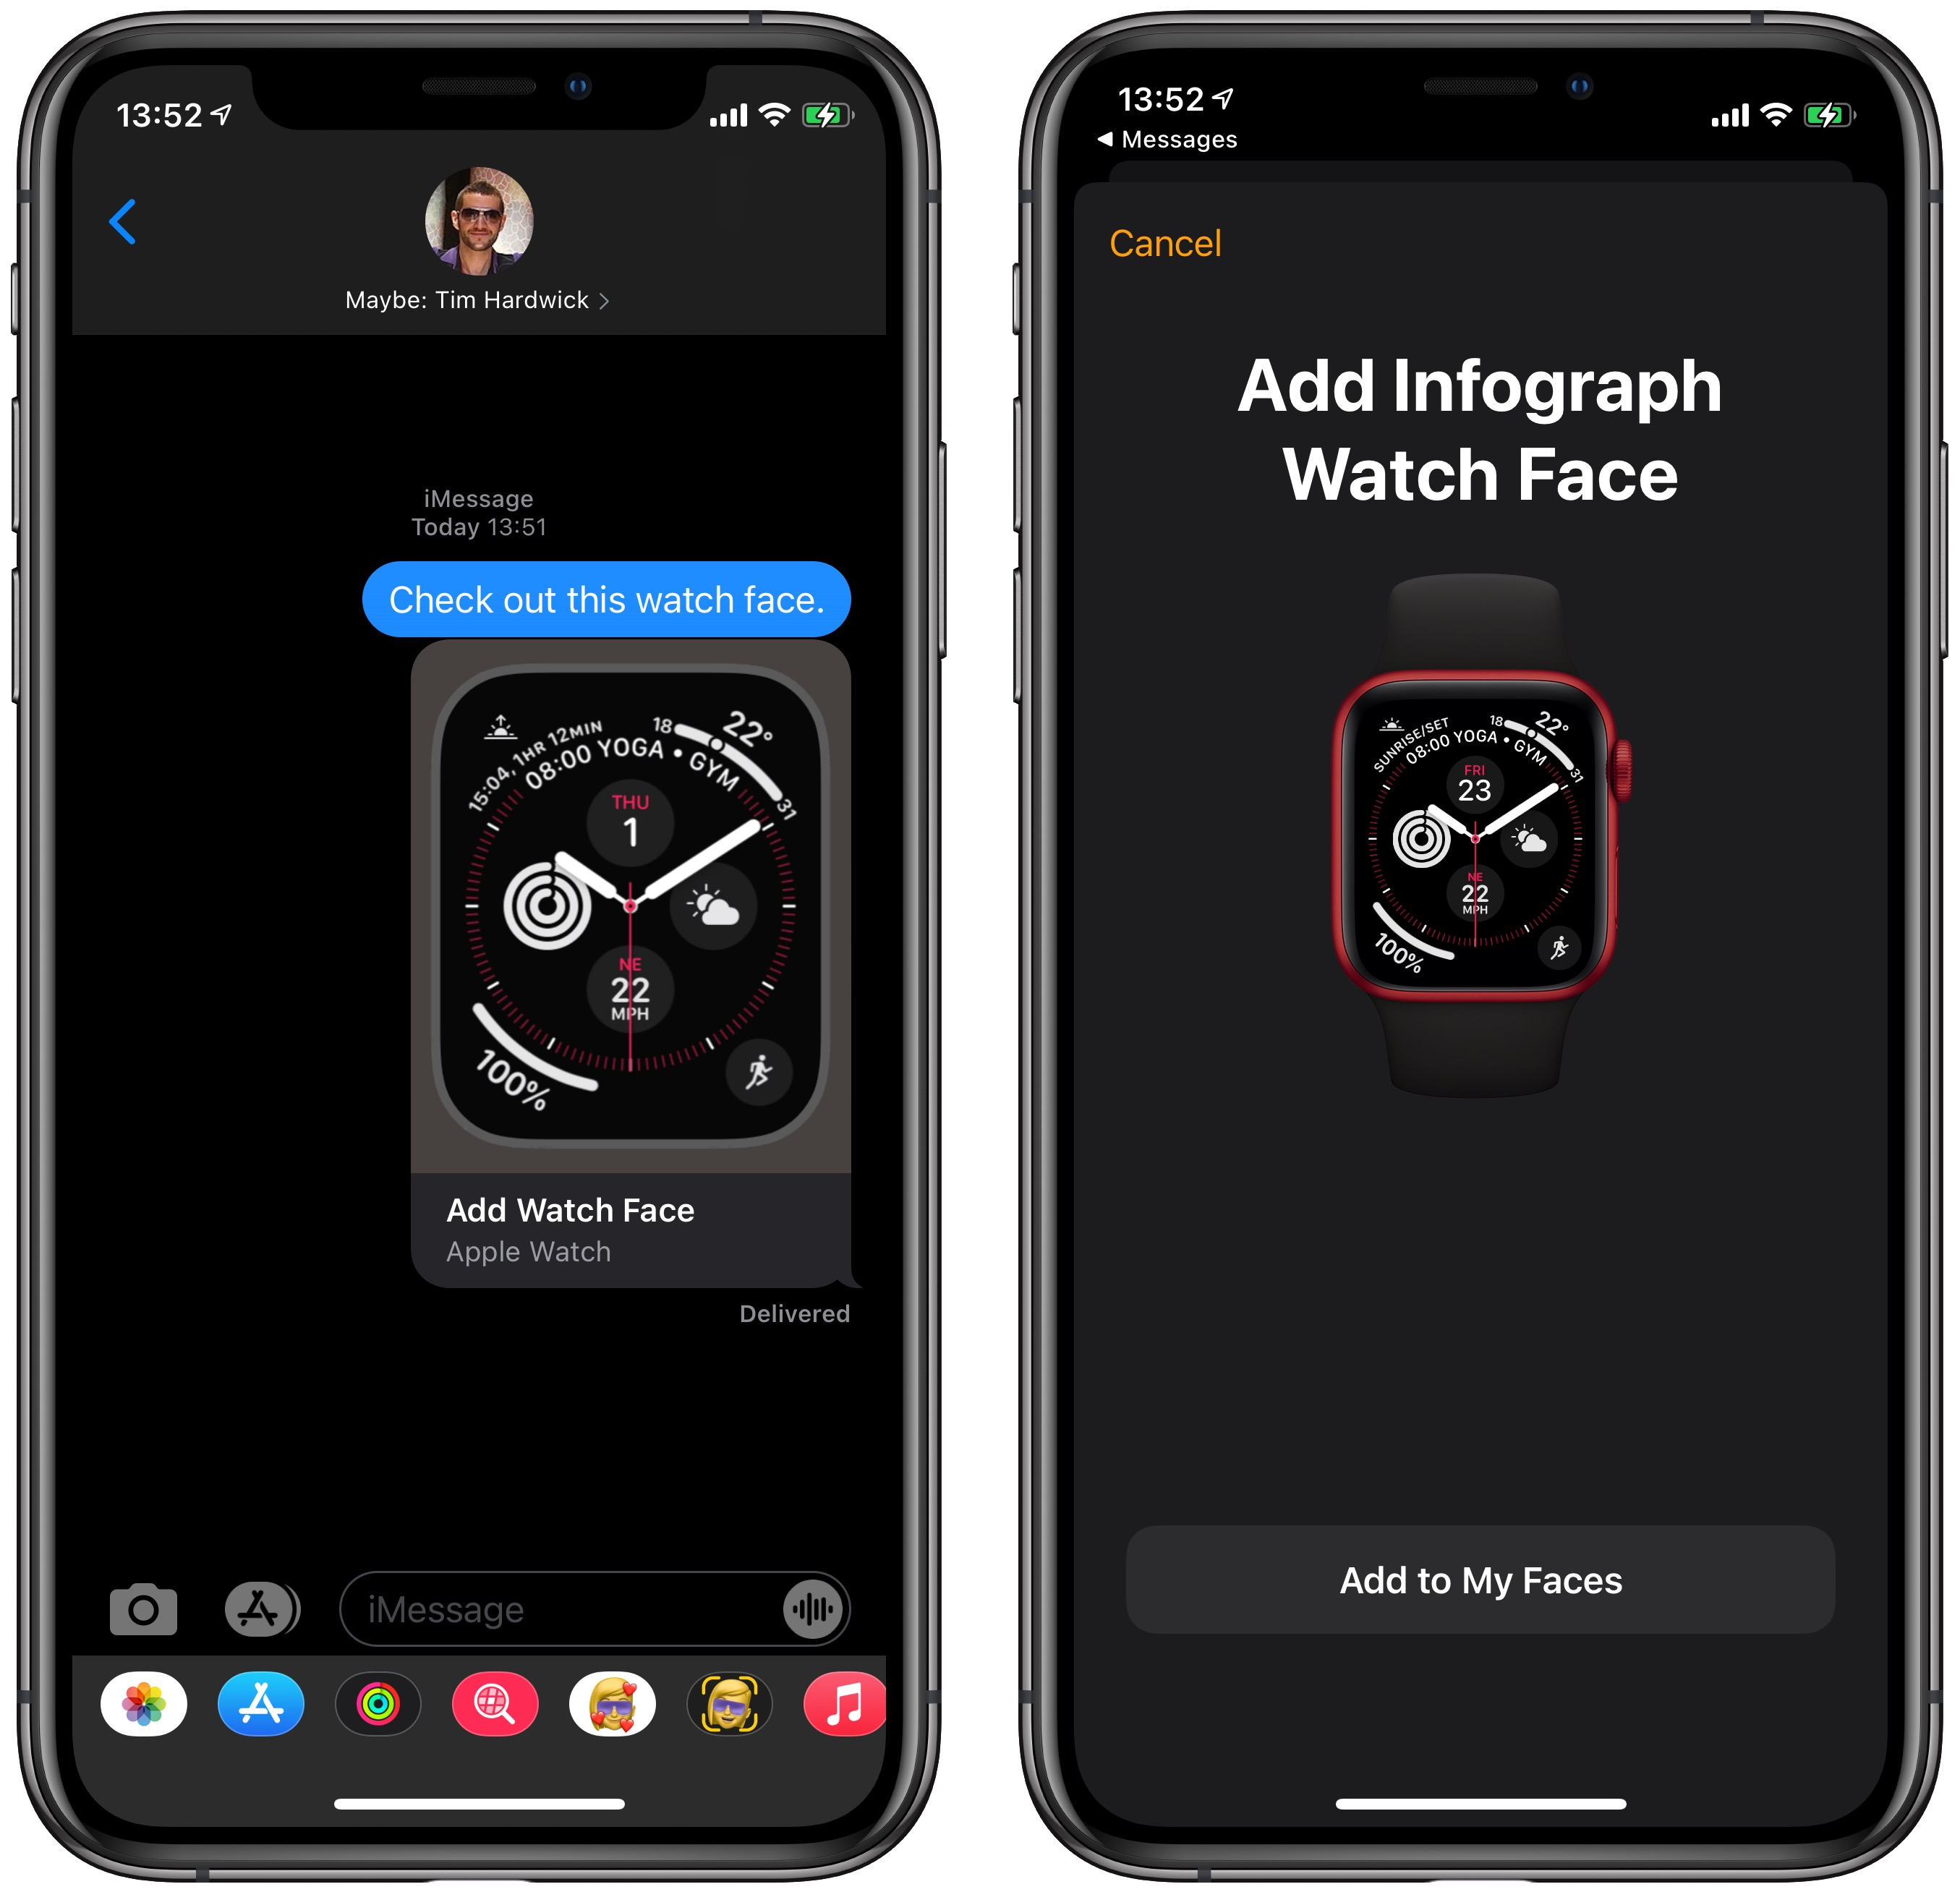 """watch face"""" width=""""2710"""" height=""""2616"""" class=""""aligncenter size-full wp-image-762087"""